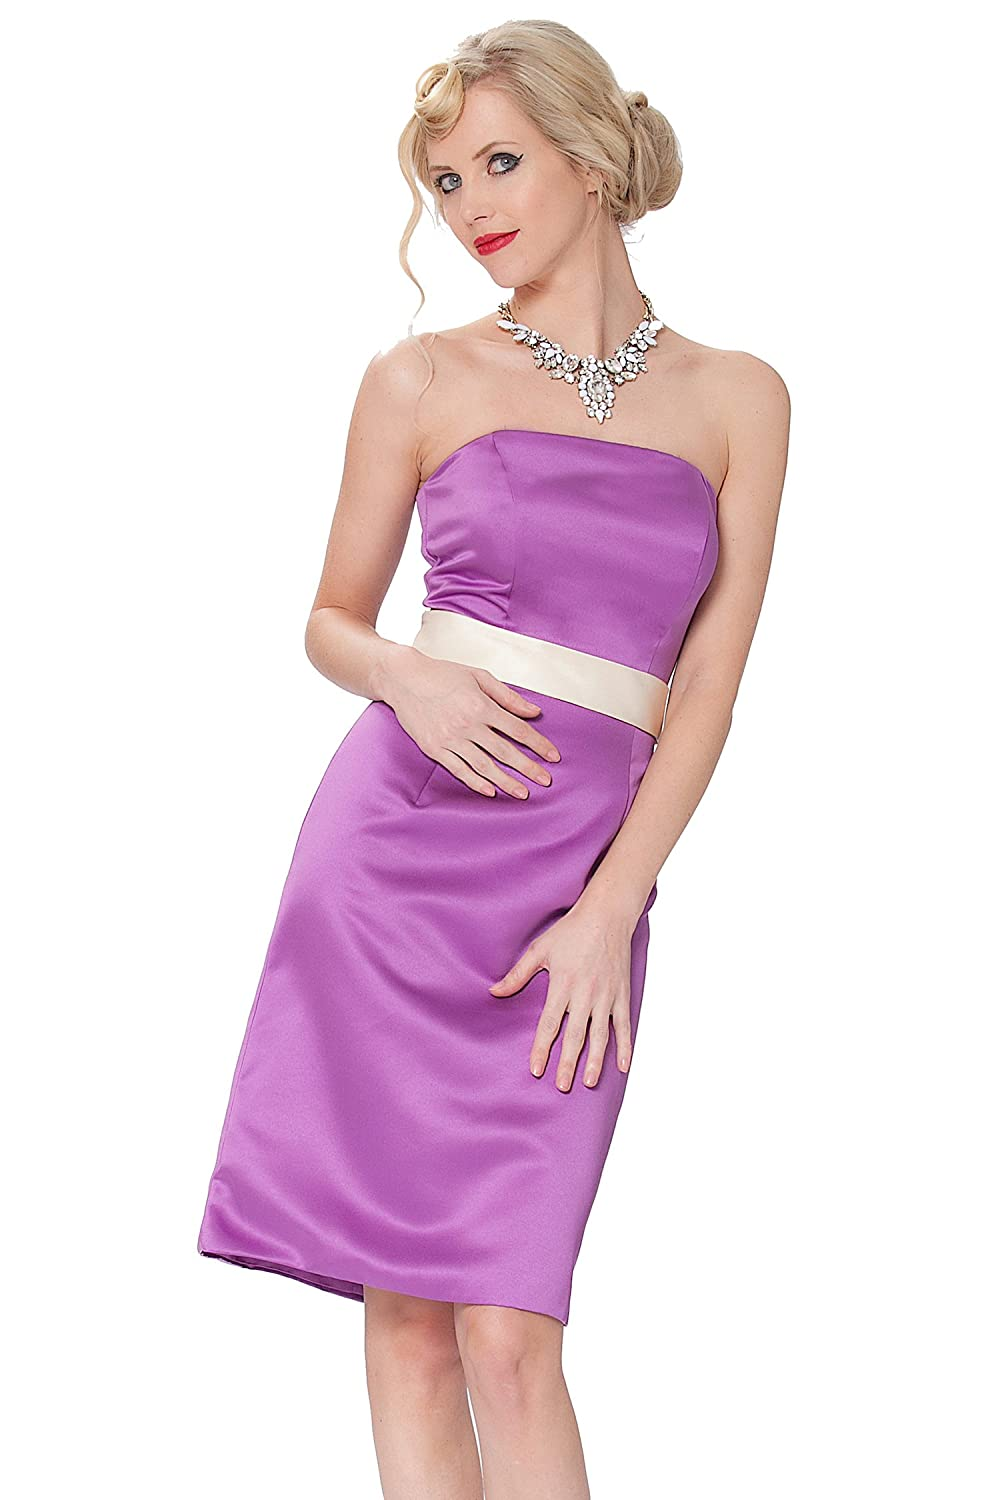 SEXYHER Gorgeous Strapless Knee Length Cocktail Bridesmaids Dress - COJ1524